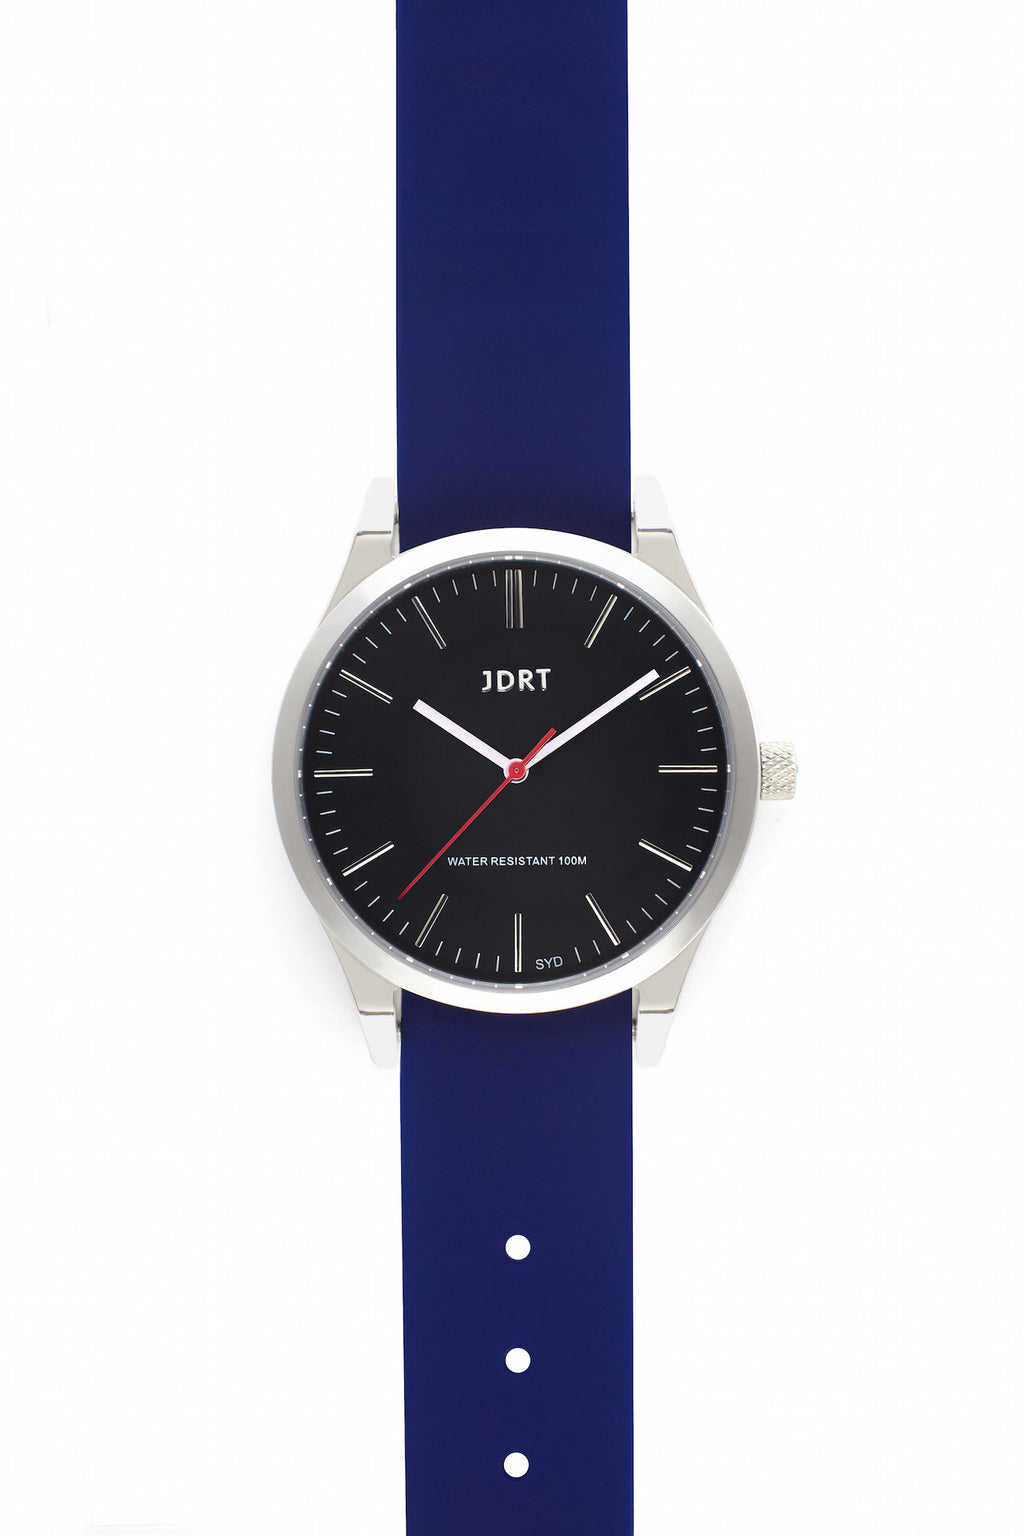 Jet Face with Blueprint Silicone Watch Band